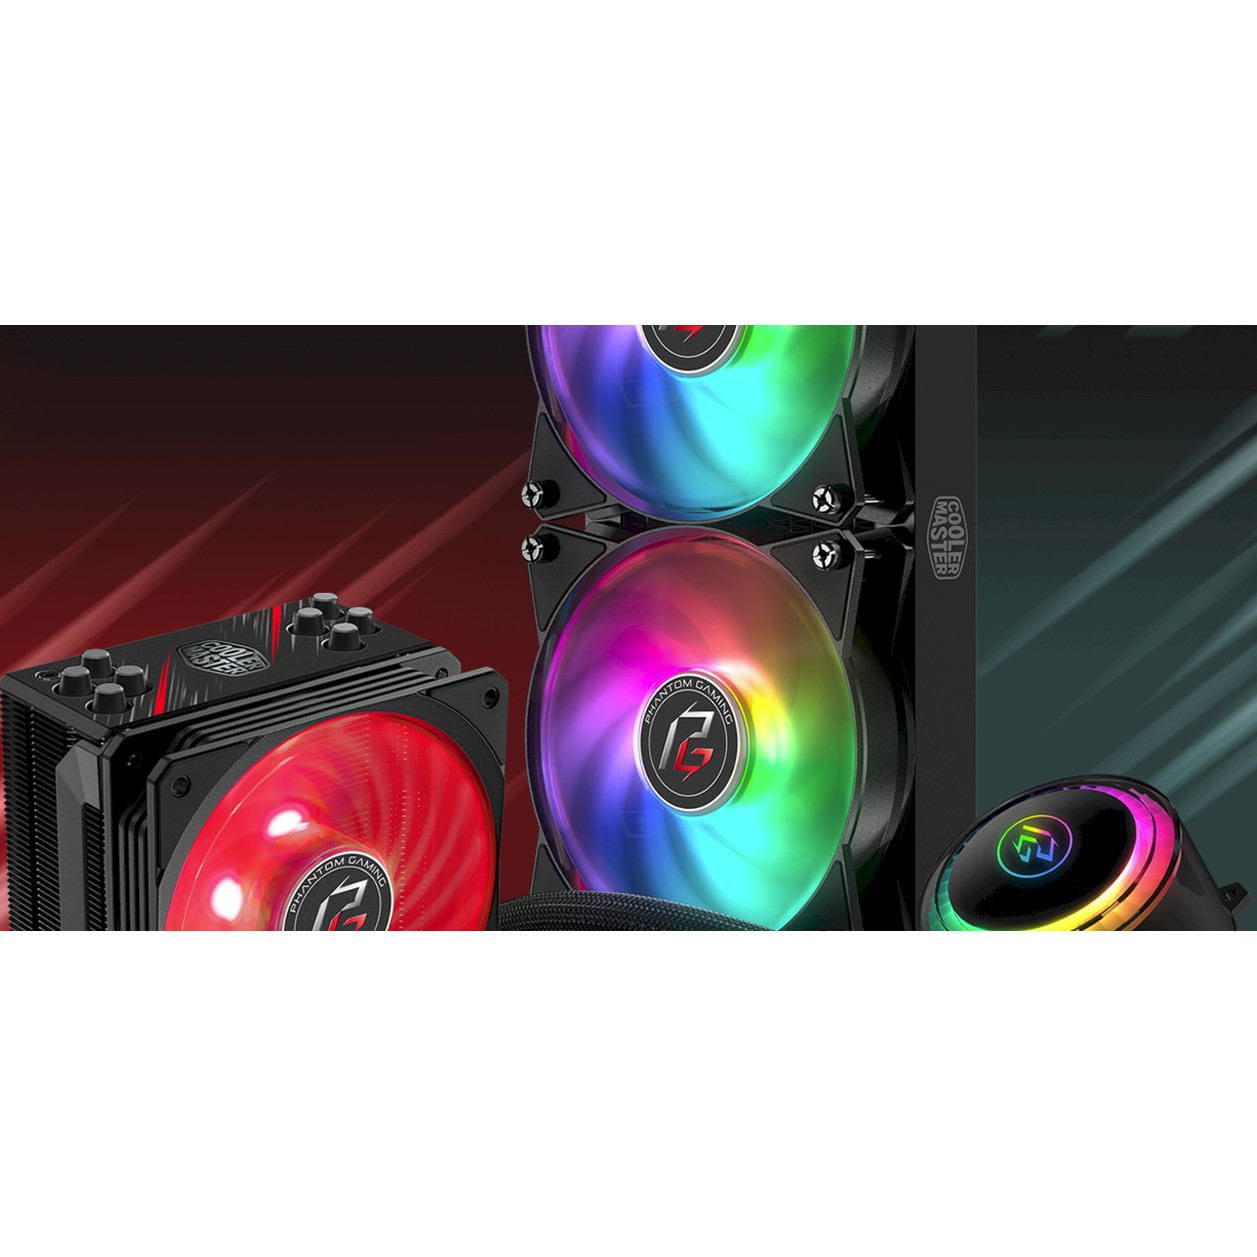 Cooler Master 240mm RGB Liquid Cooler